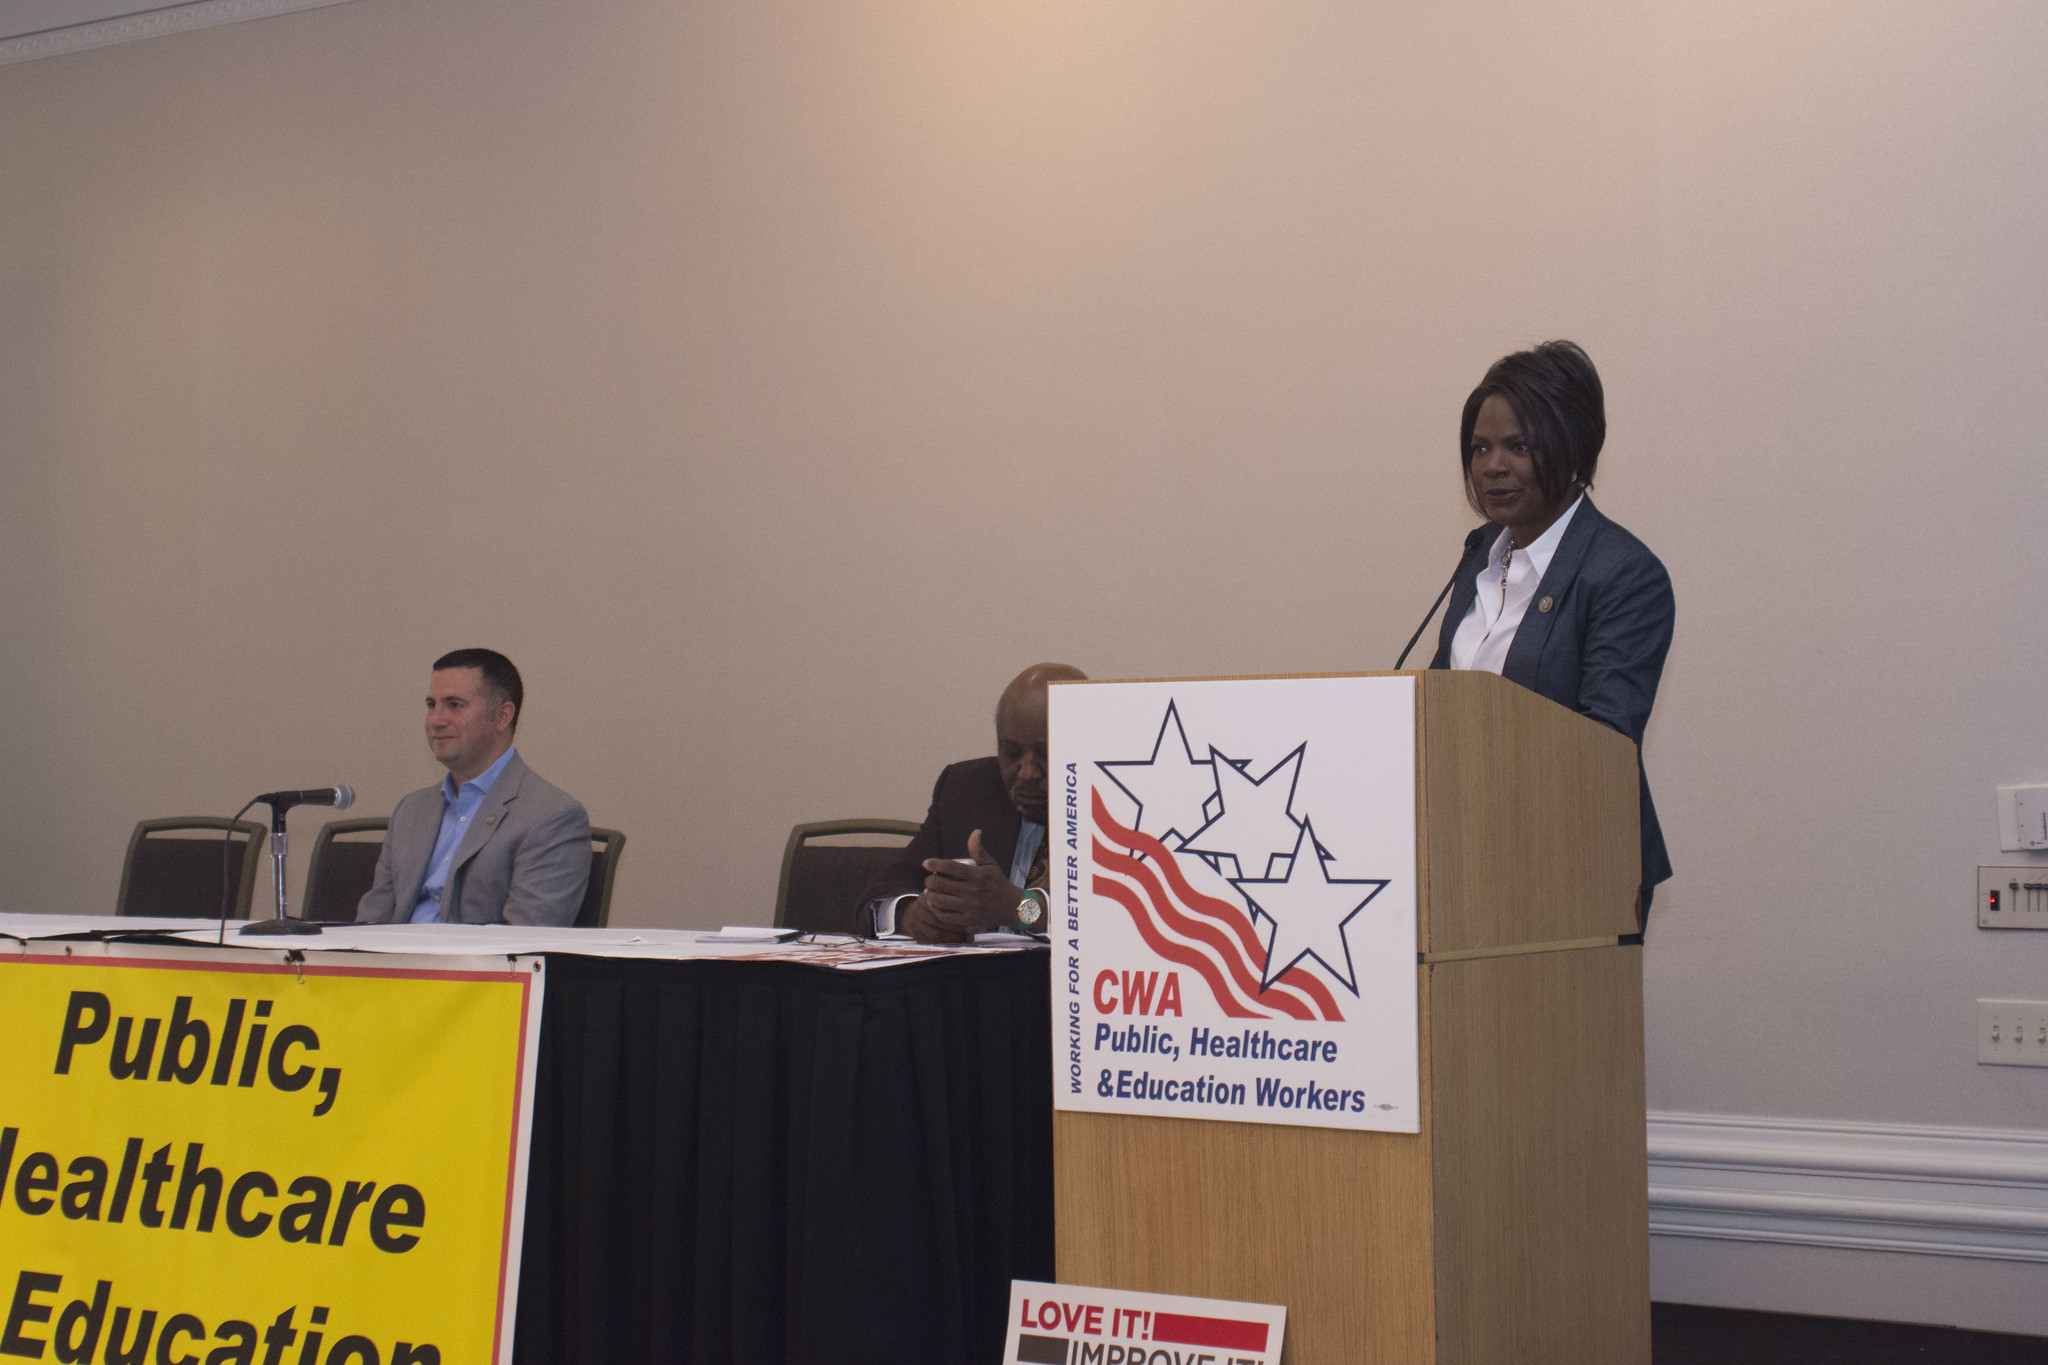 Rep. Val Demings at the 2017 Public, Healthcare, and Education Workers Conference